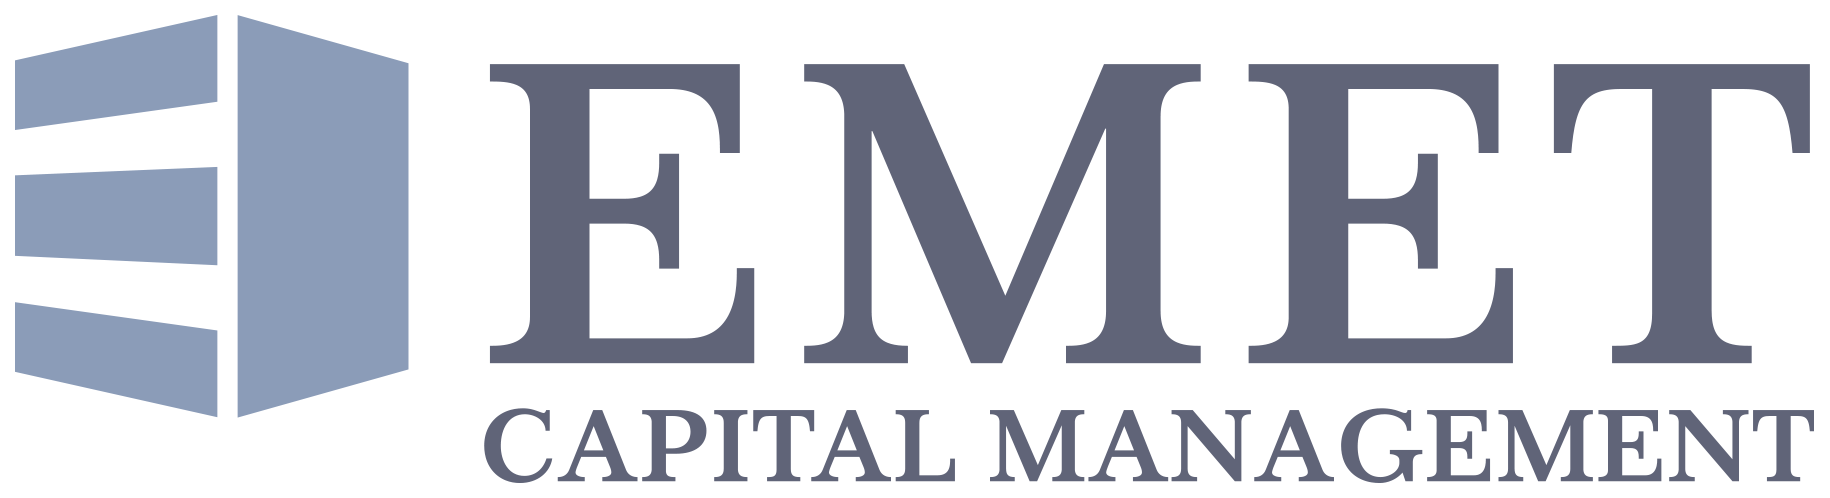 Emet Capital Management